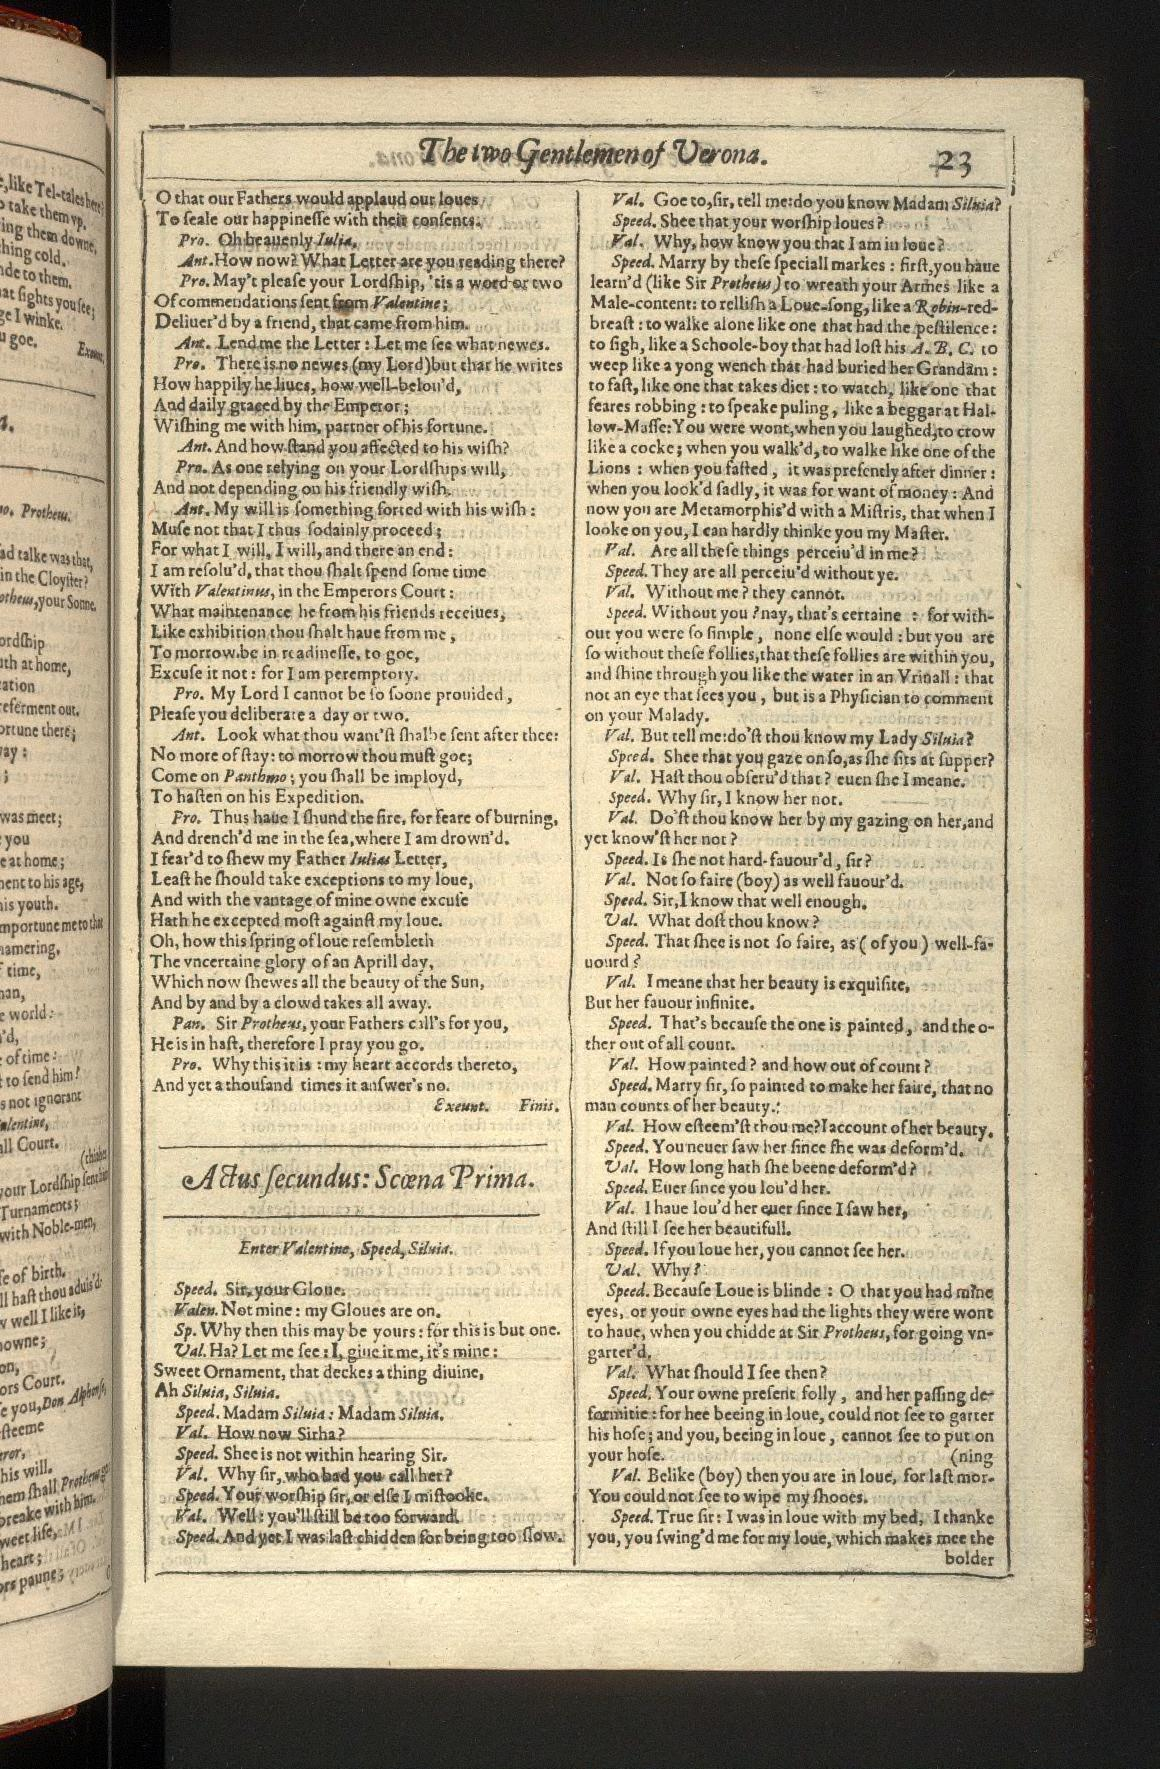 File:First Folio, Shakespeare - 0041.jpg - Wikimedia Commons